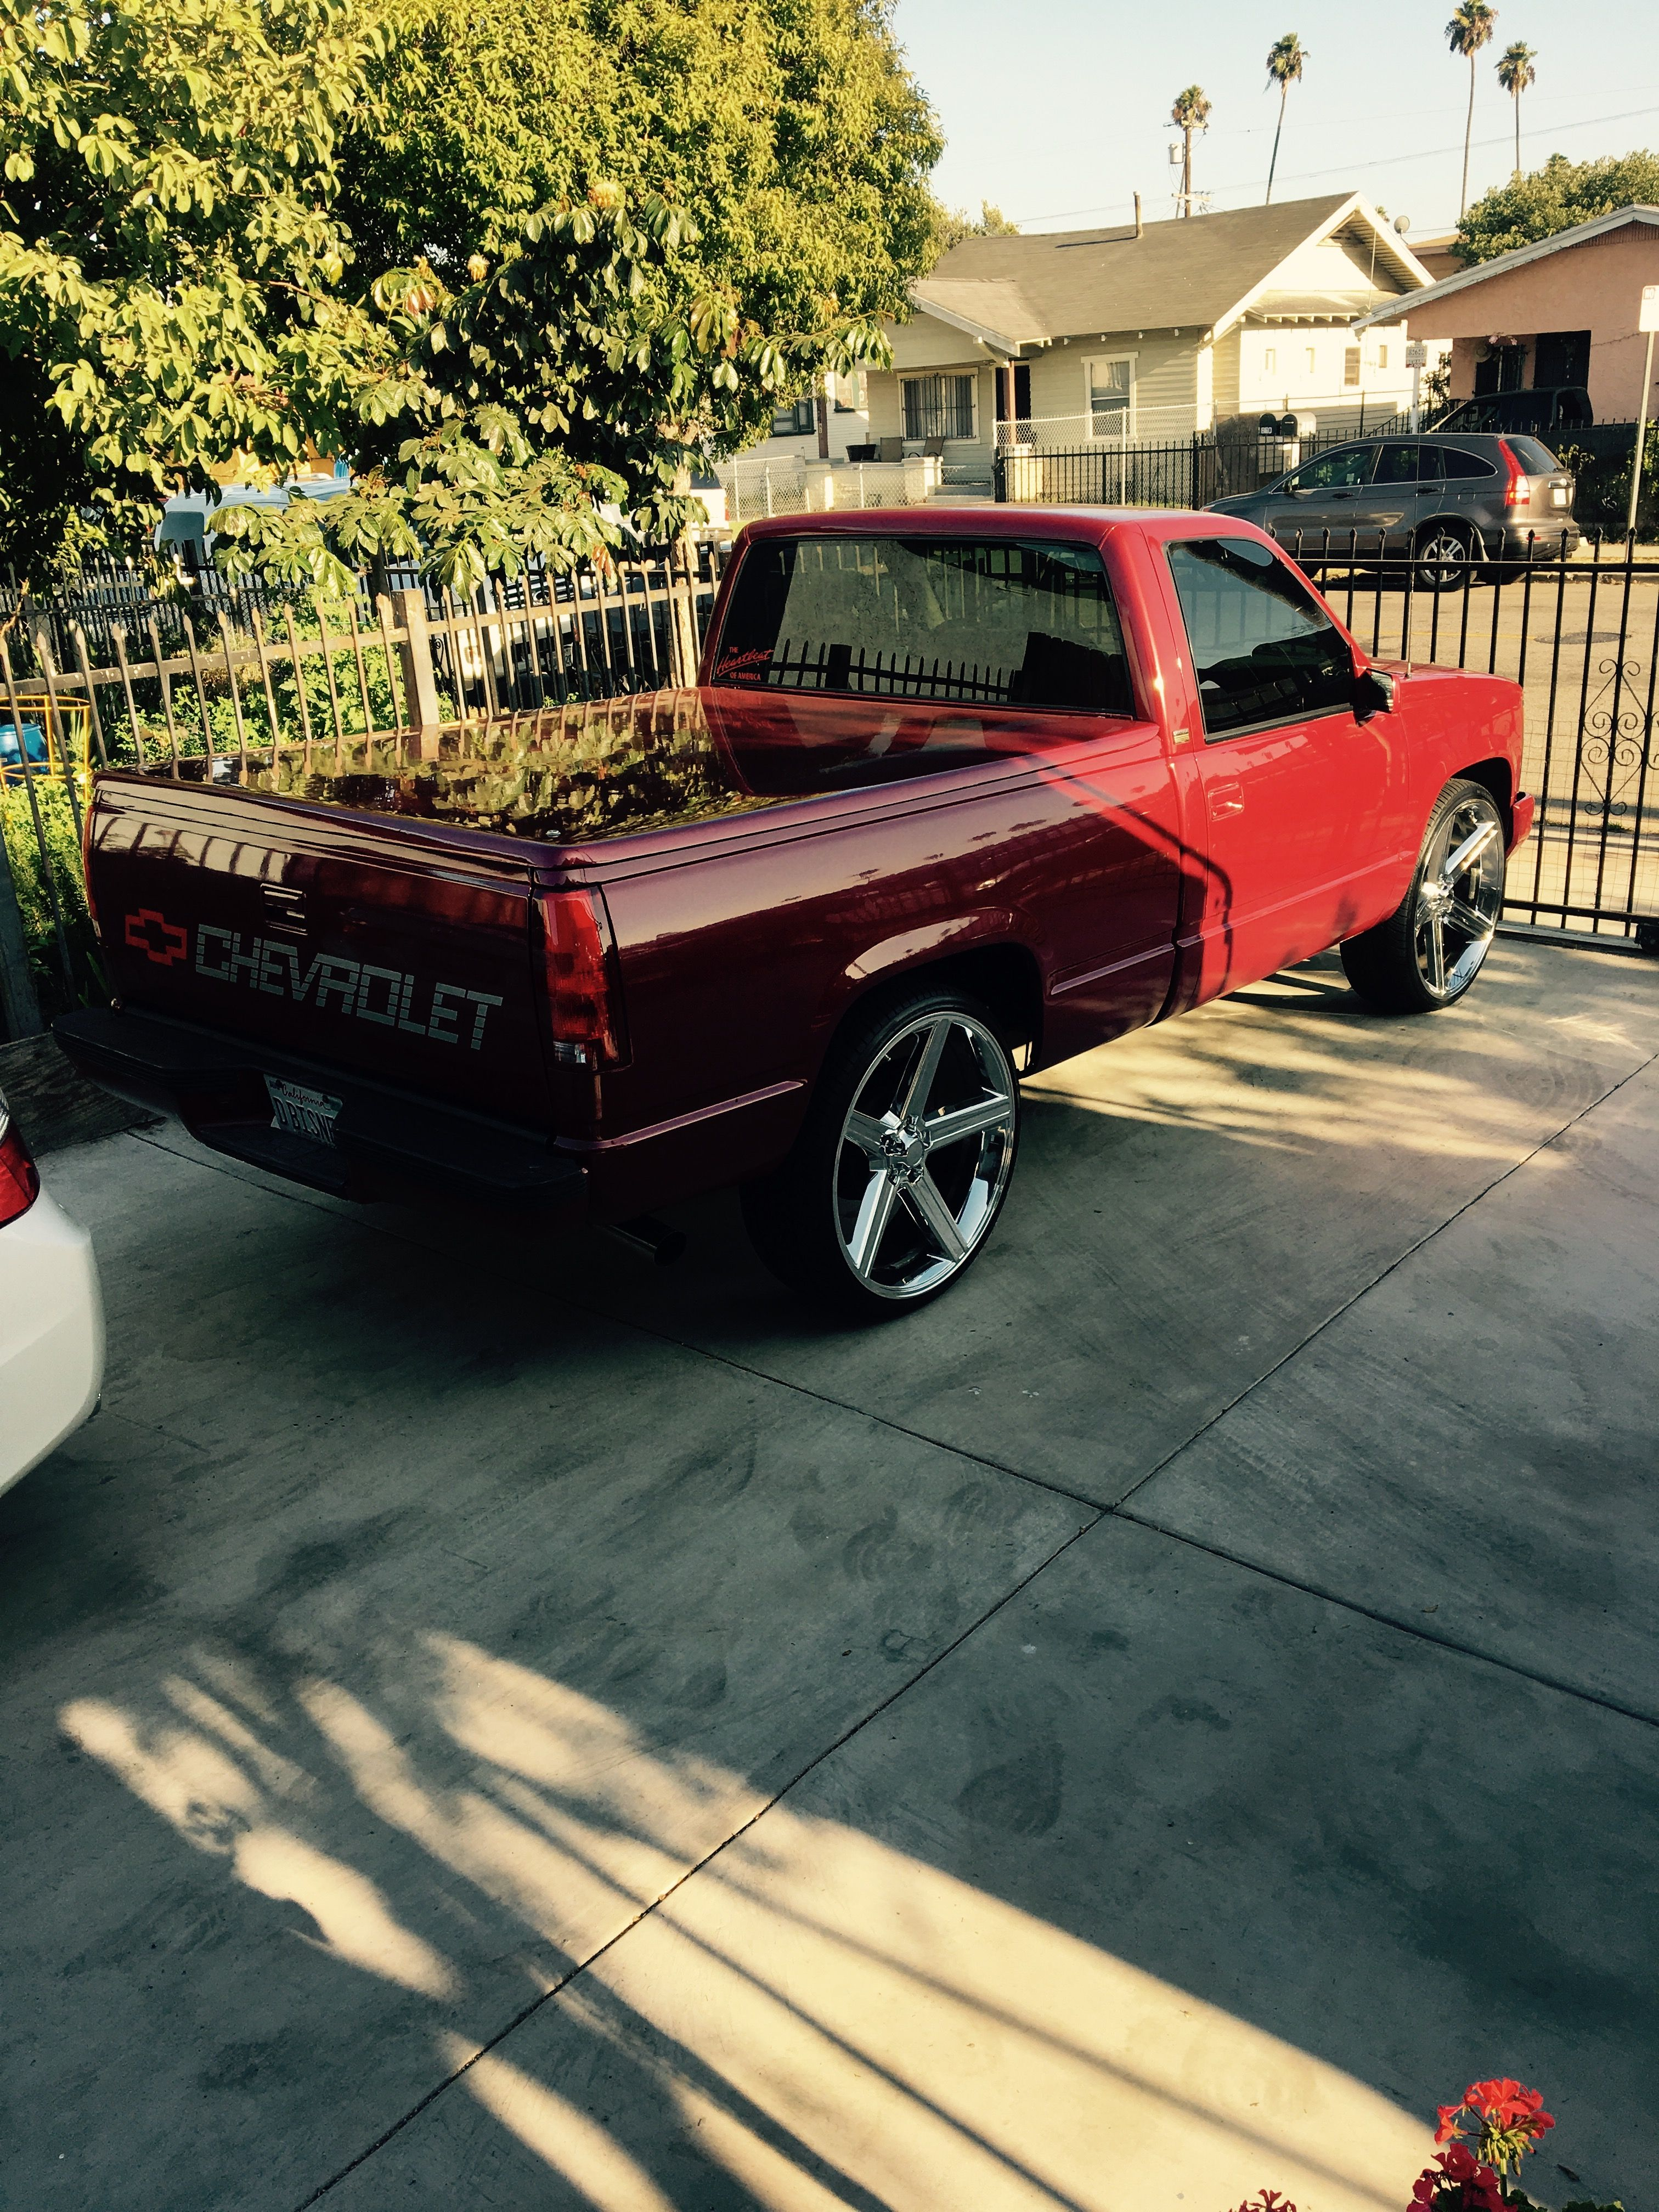 Sitting tall 26's chevy silverado 1989 (With images ...